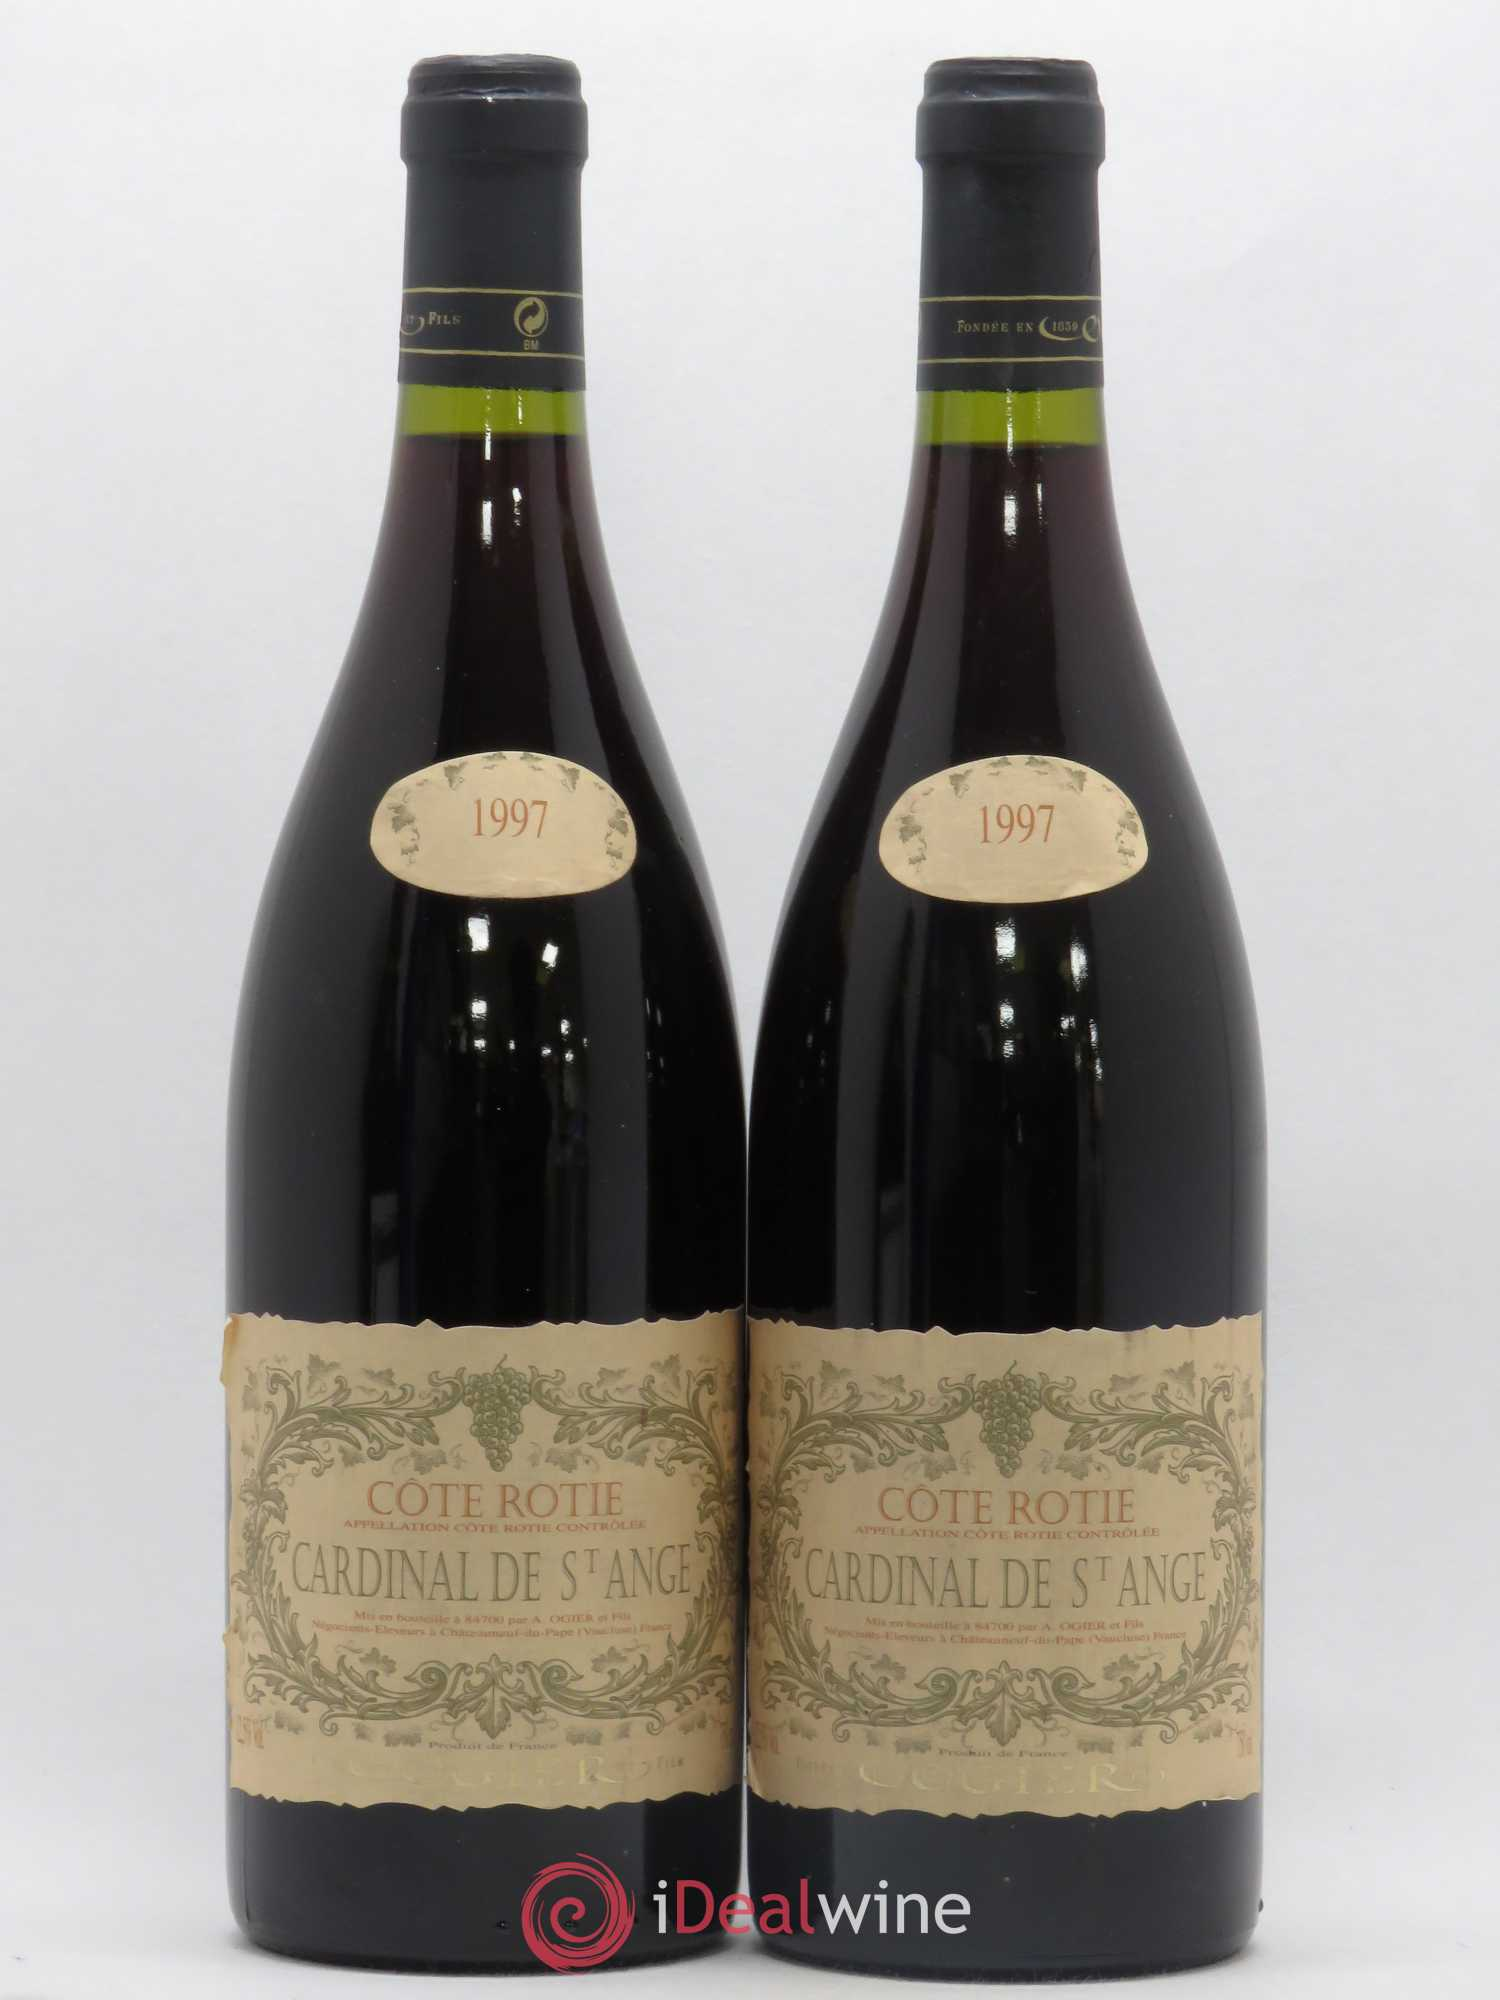 Côte-Rôtie Cardinal de Saint-Ange Domaine Ogier 1997 - Lot of 2 Bottles